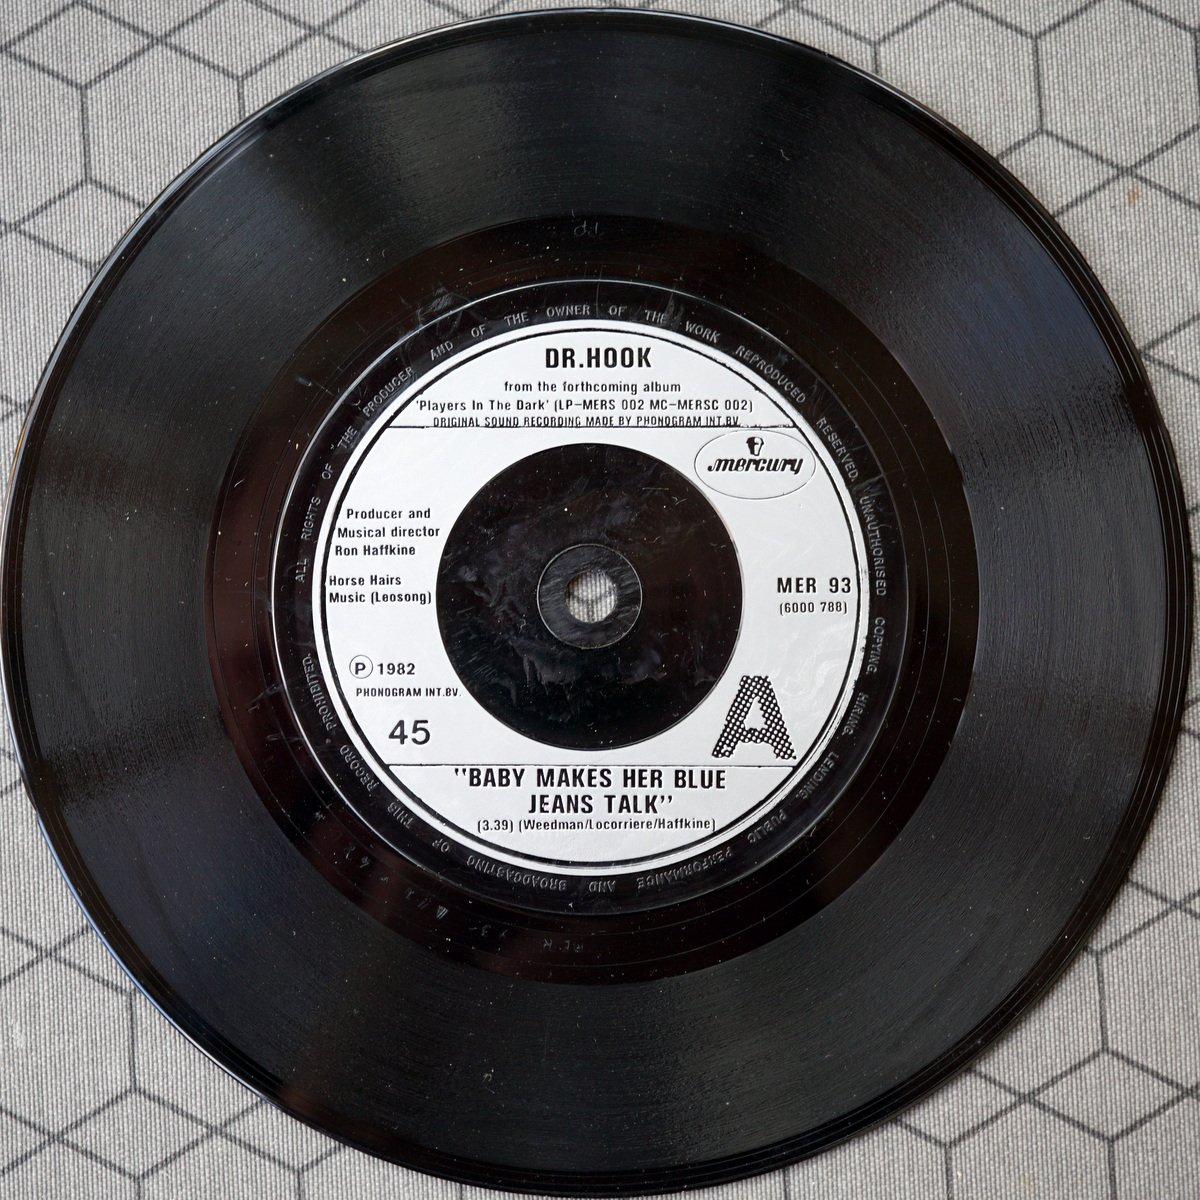 S PD A1 - MER 93 - Baby Let Her Blue Jeans Talk - 1982 - UK - 3